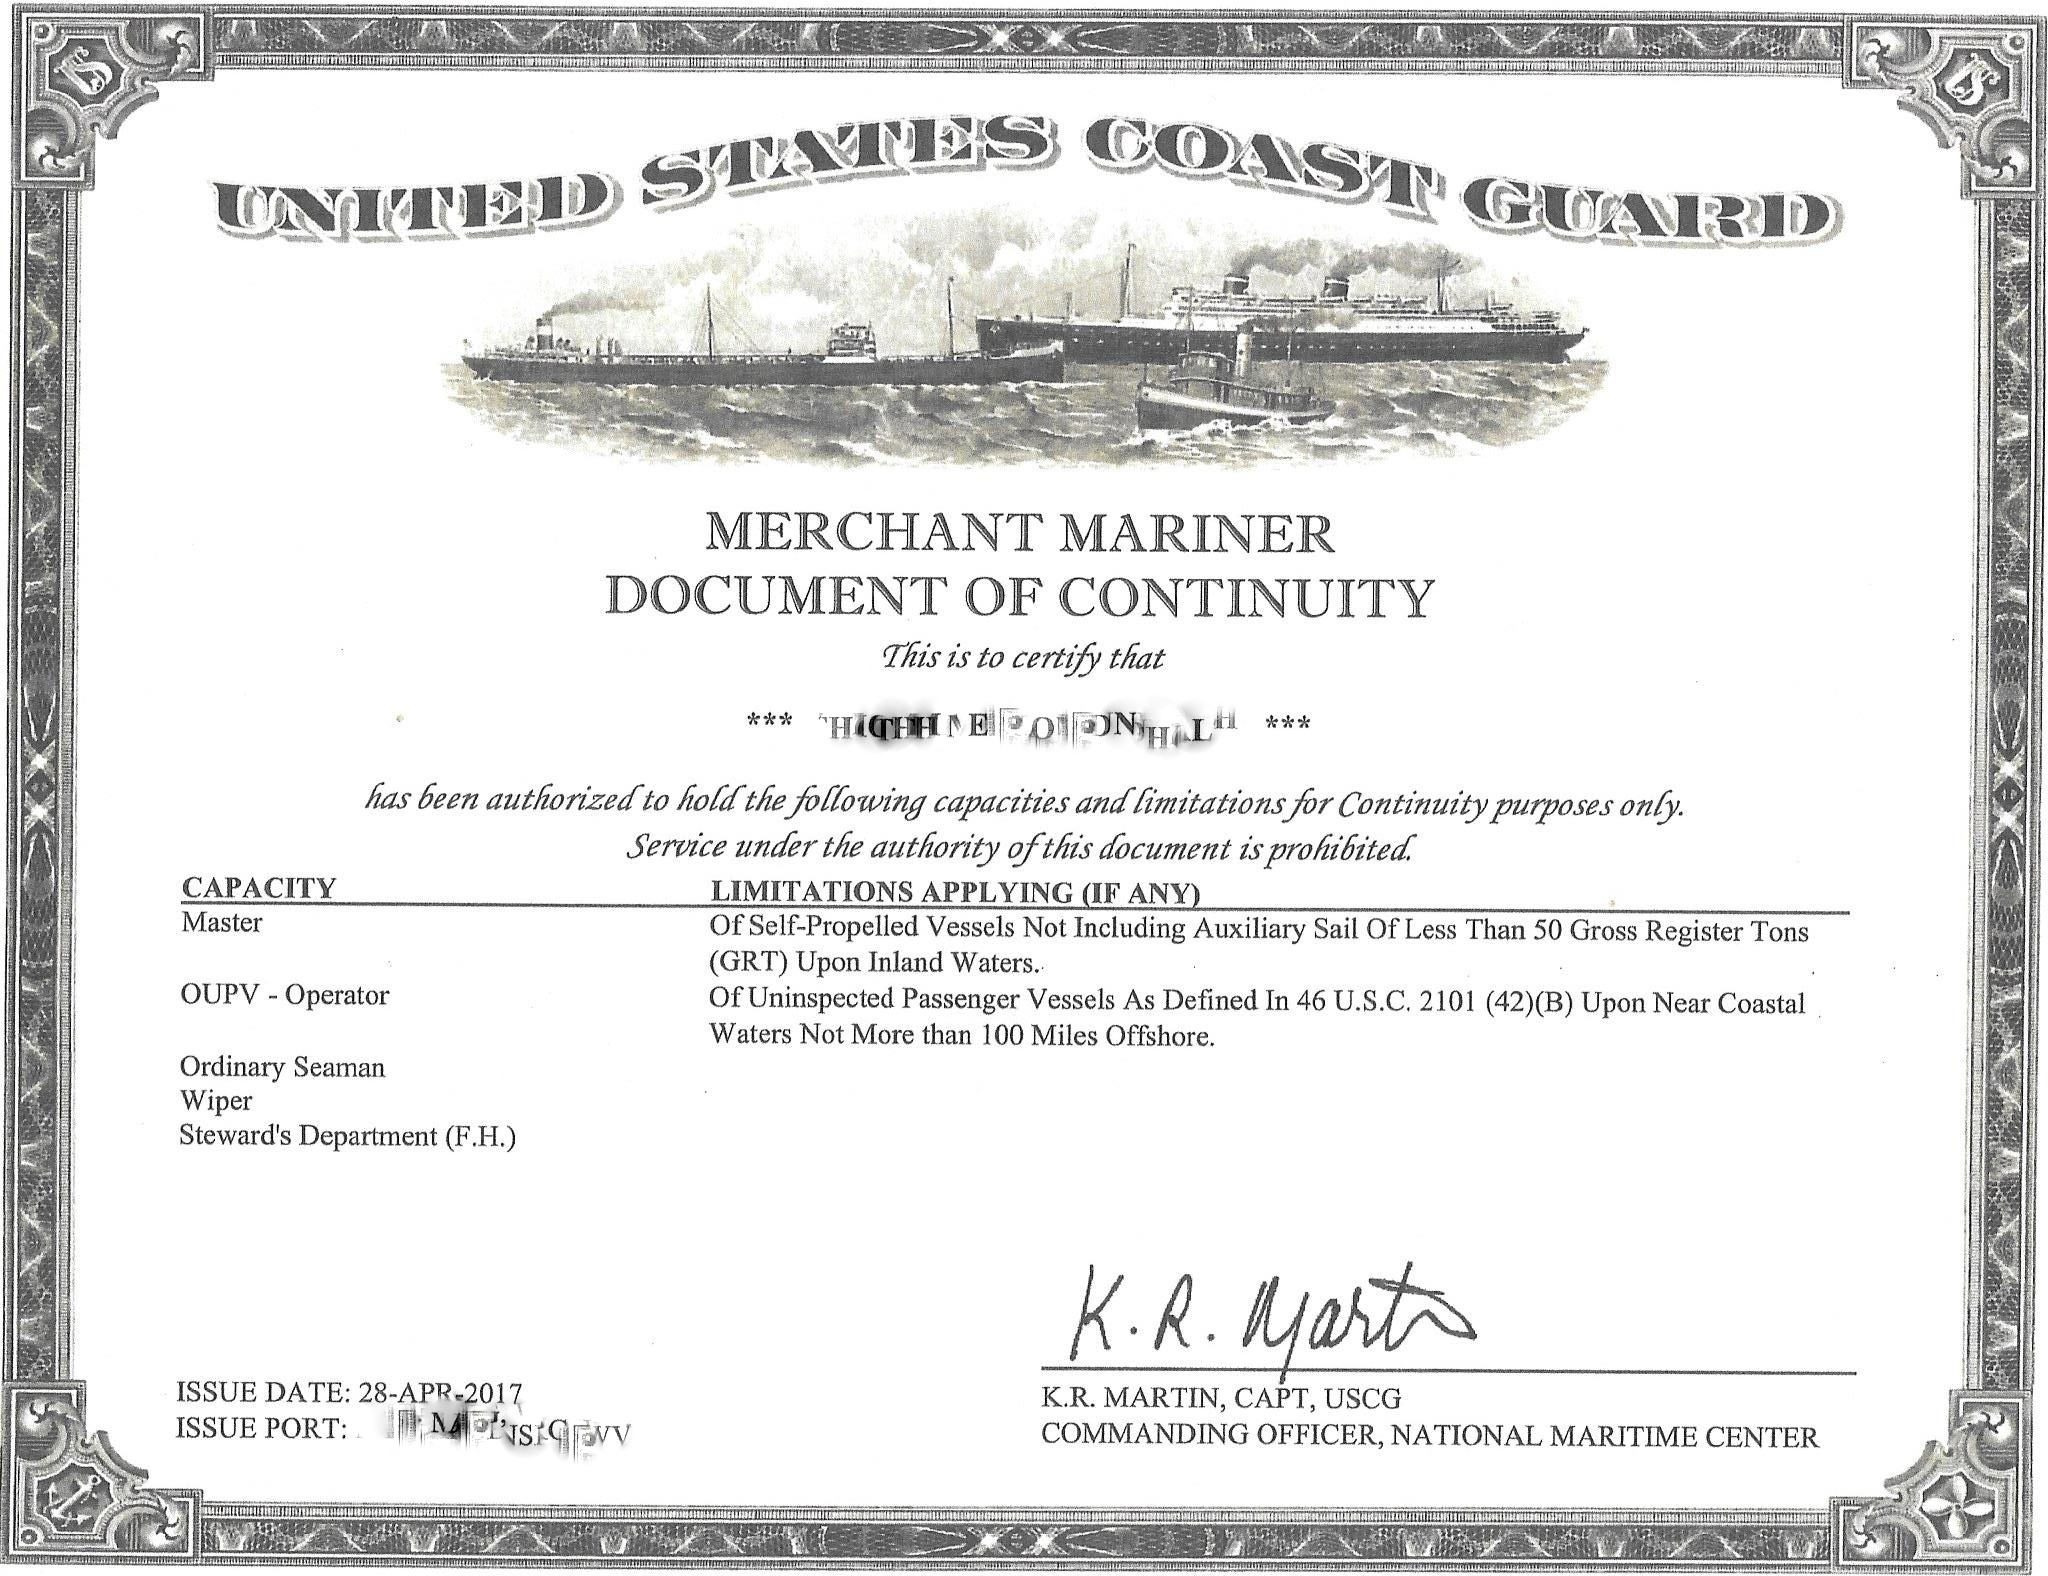 USCG Document of Continuity